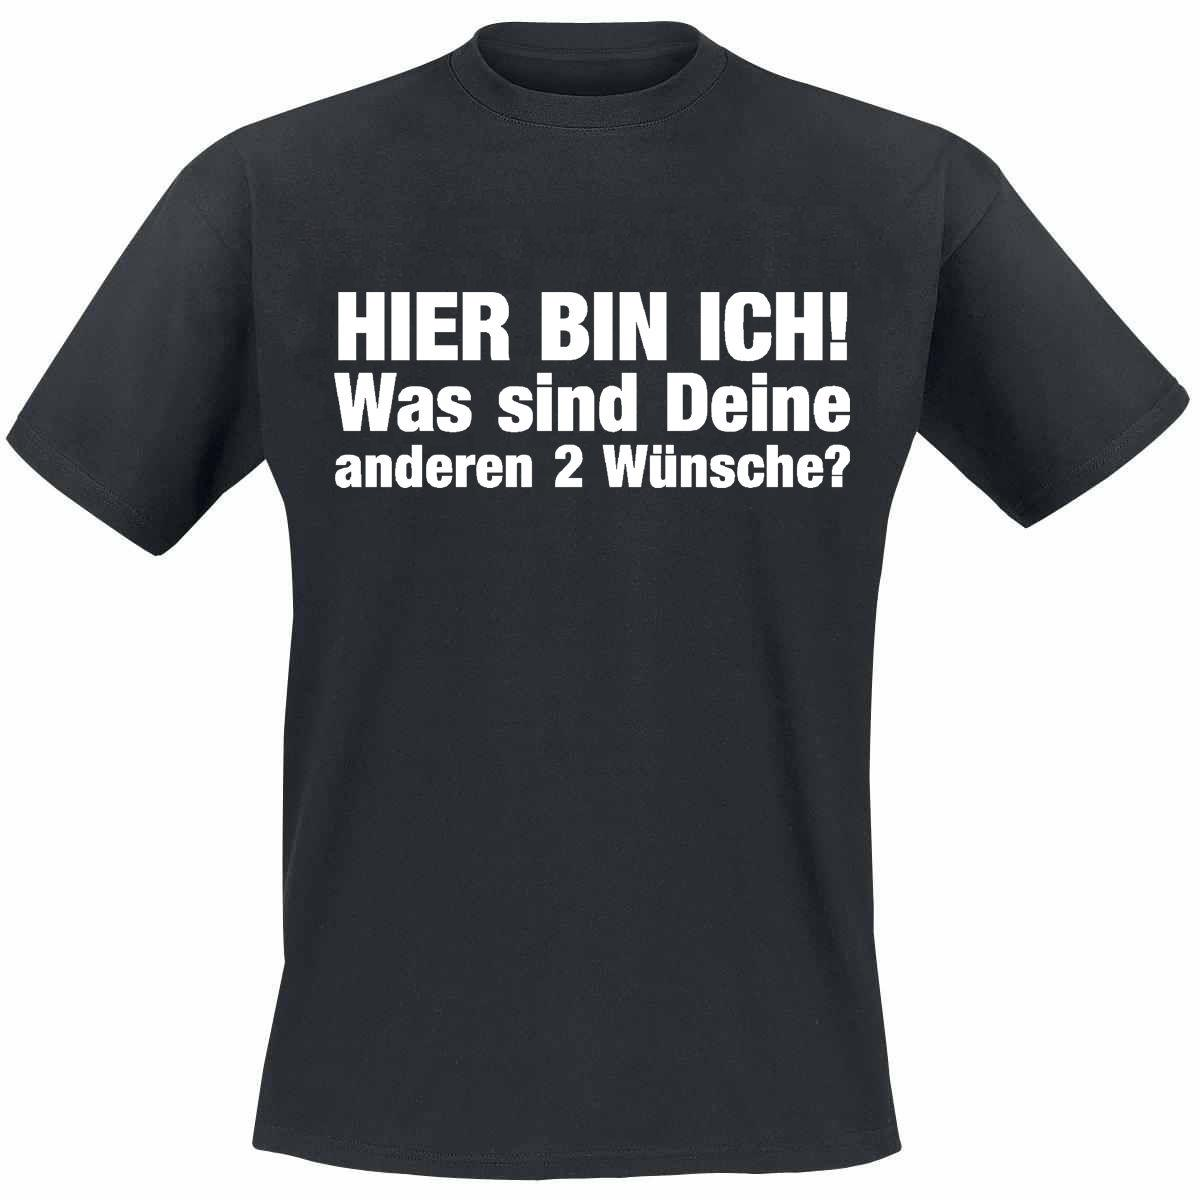 Hier Bin Ich Coole Lustige Sprüche T Shirts Fun T Shirt Funny Free Shipping Unisex Casual Tshirt Top